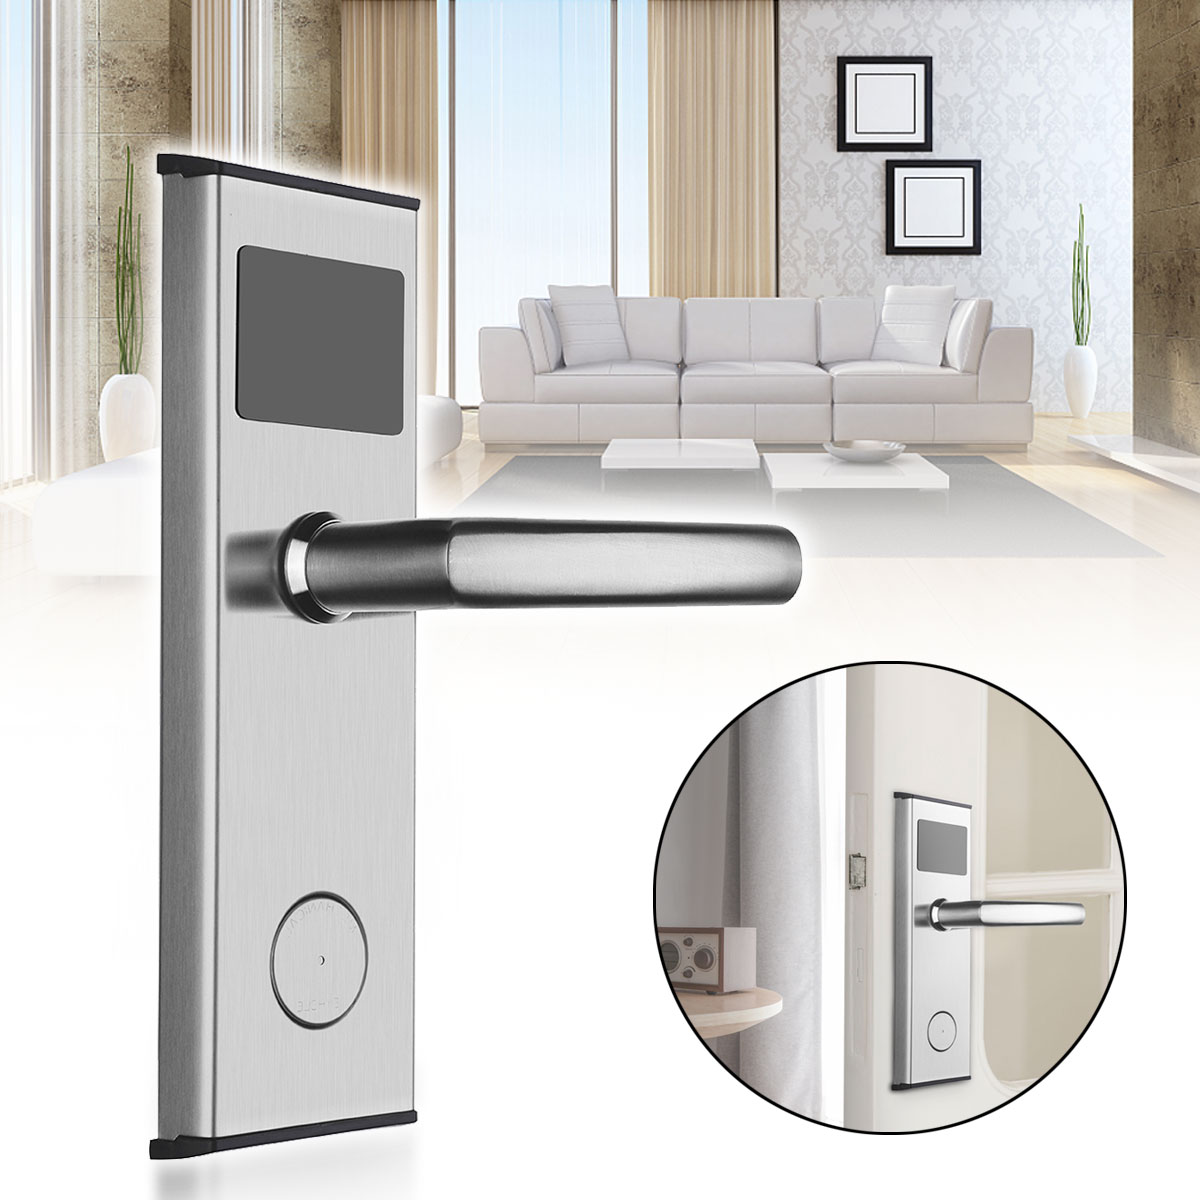 Safurance Card-Lock Door-Lock-System RFID Hotel Digital Security Intelligent Stainless-Steel title=